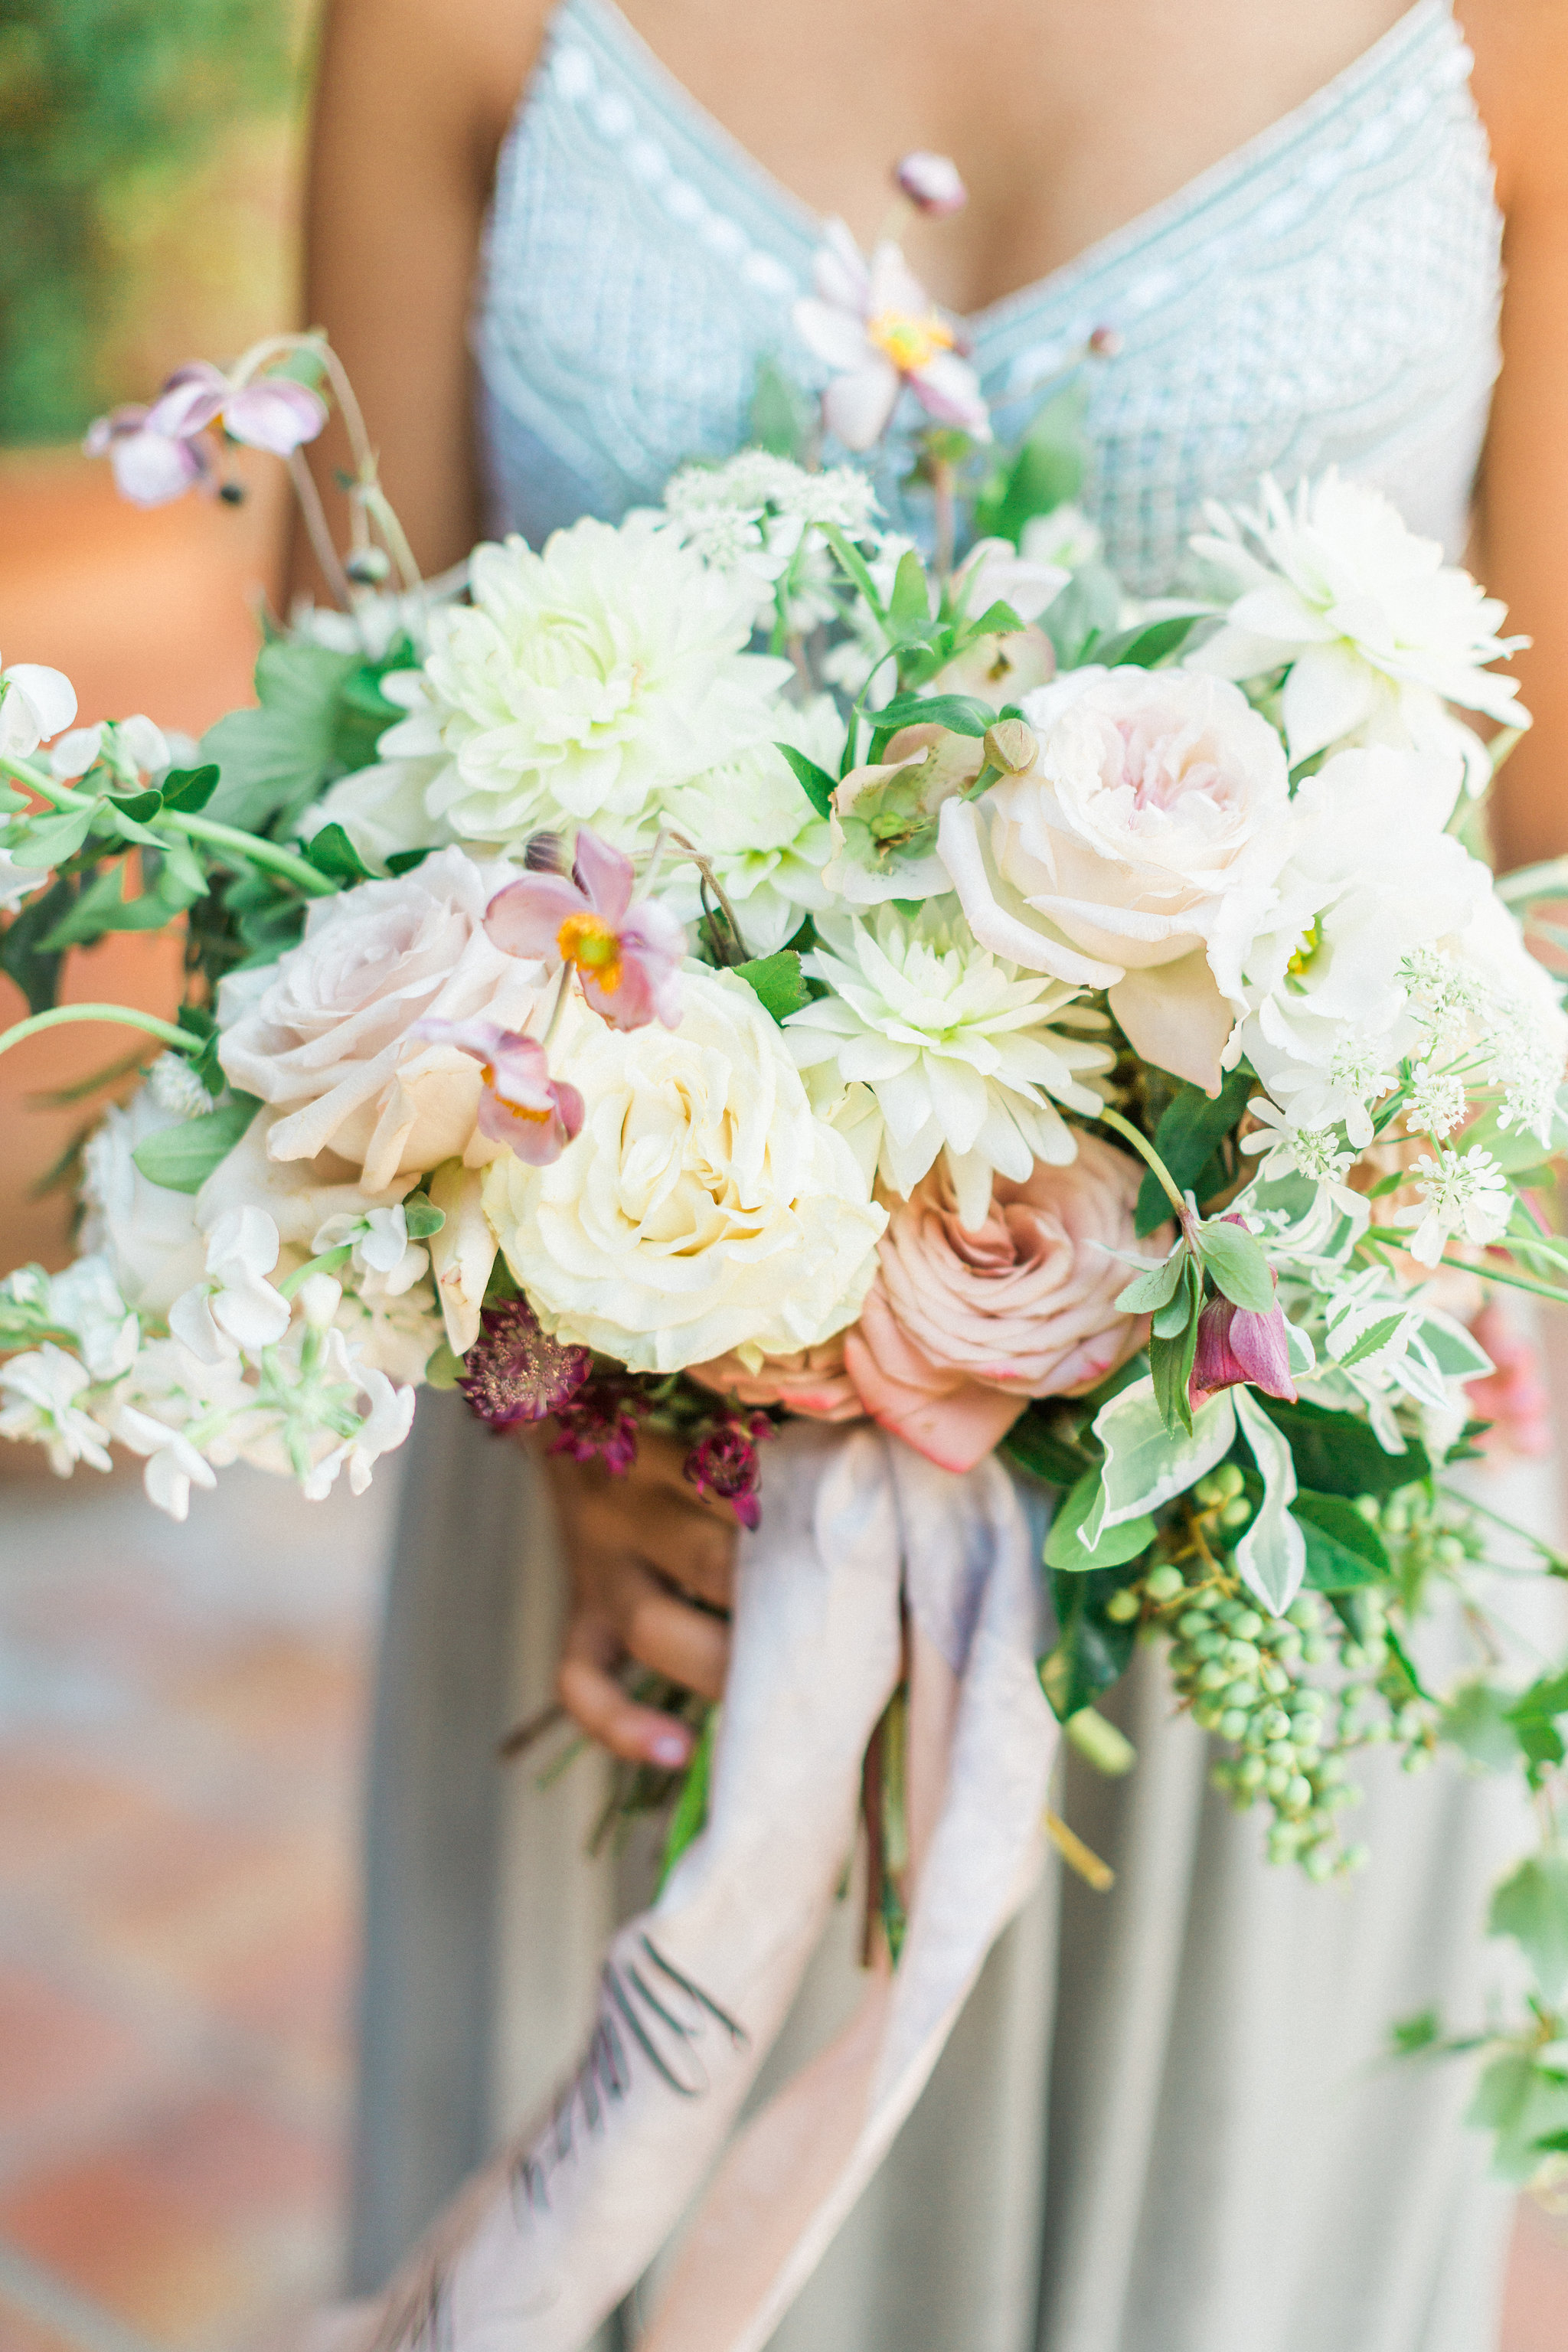 whimsical+bridal+bouquet+lovely+soiree+floral+designs+at+the+gallery+houston+texas